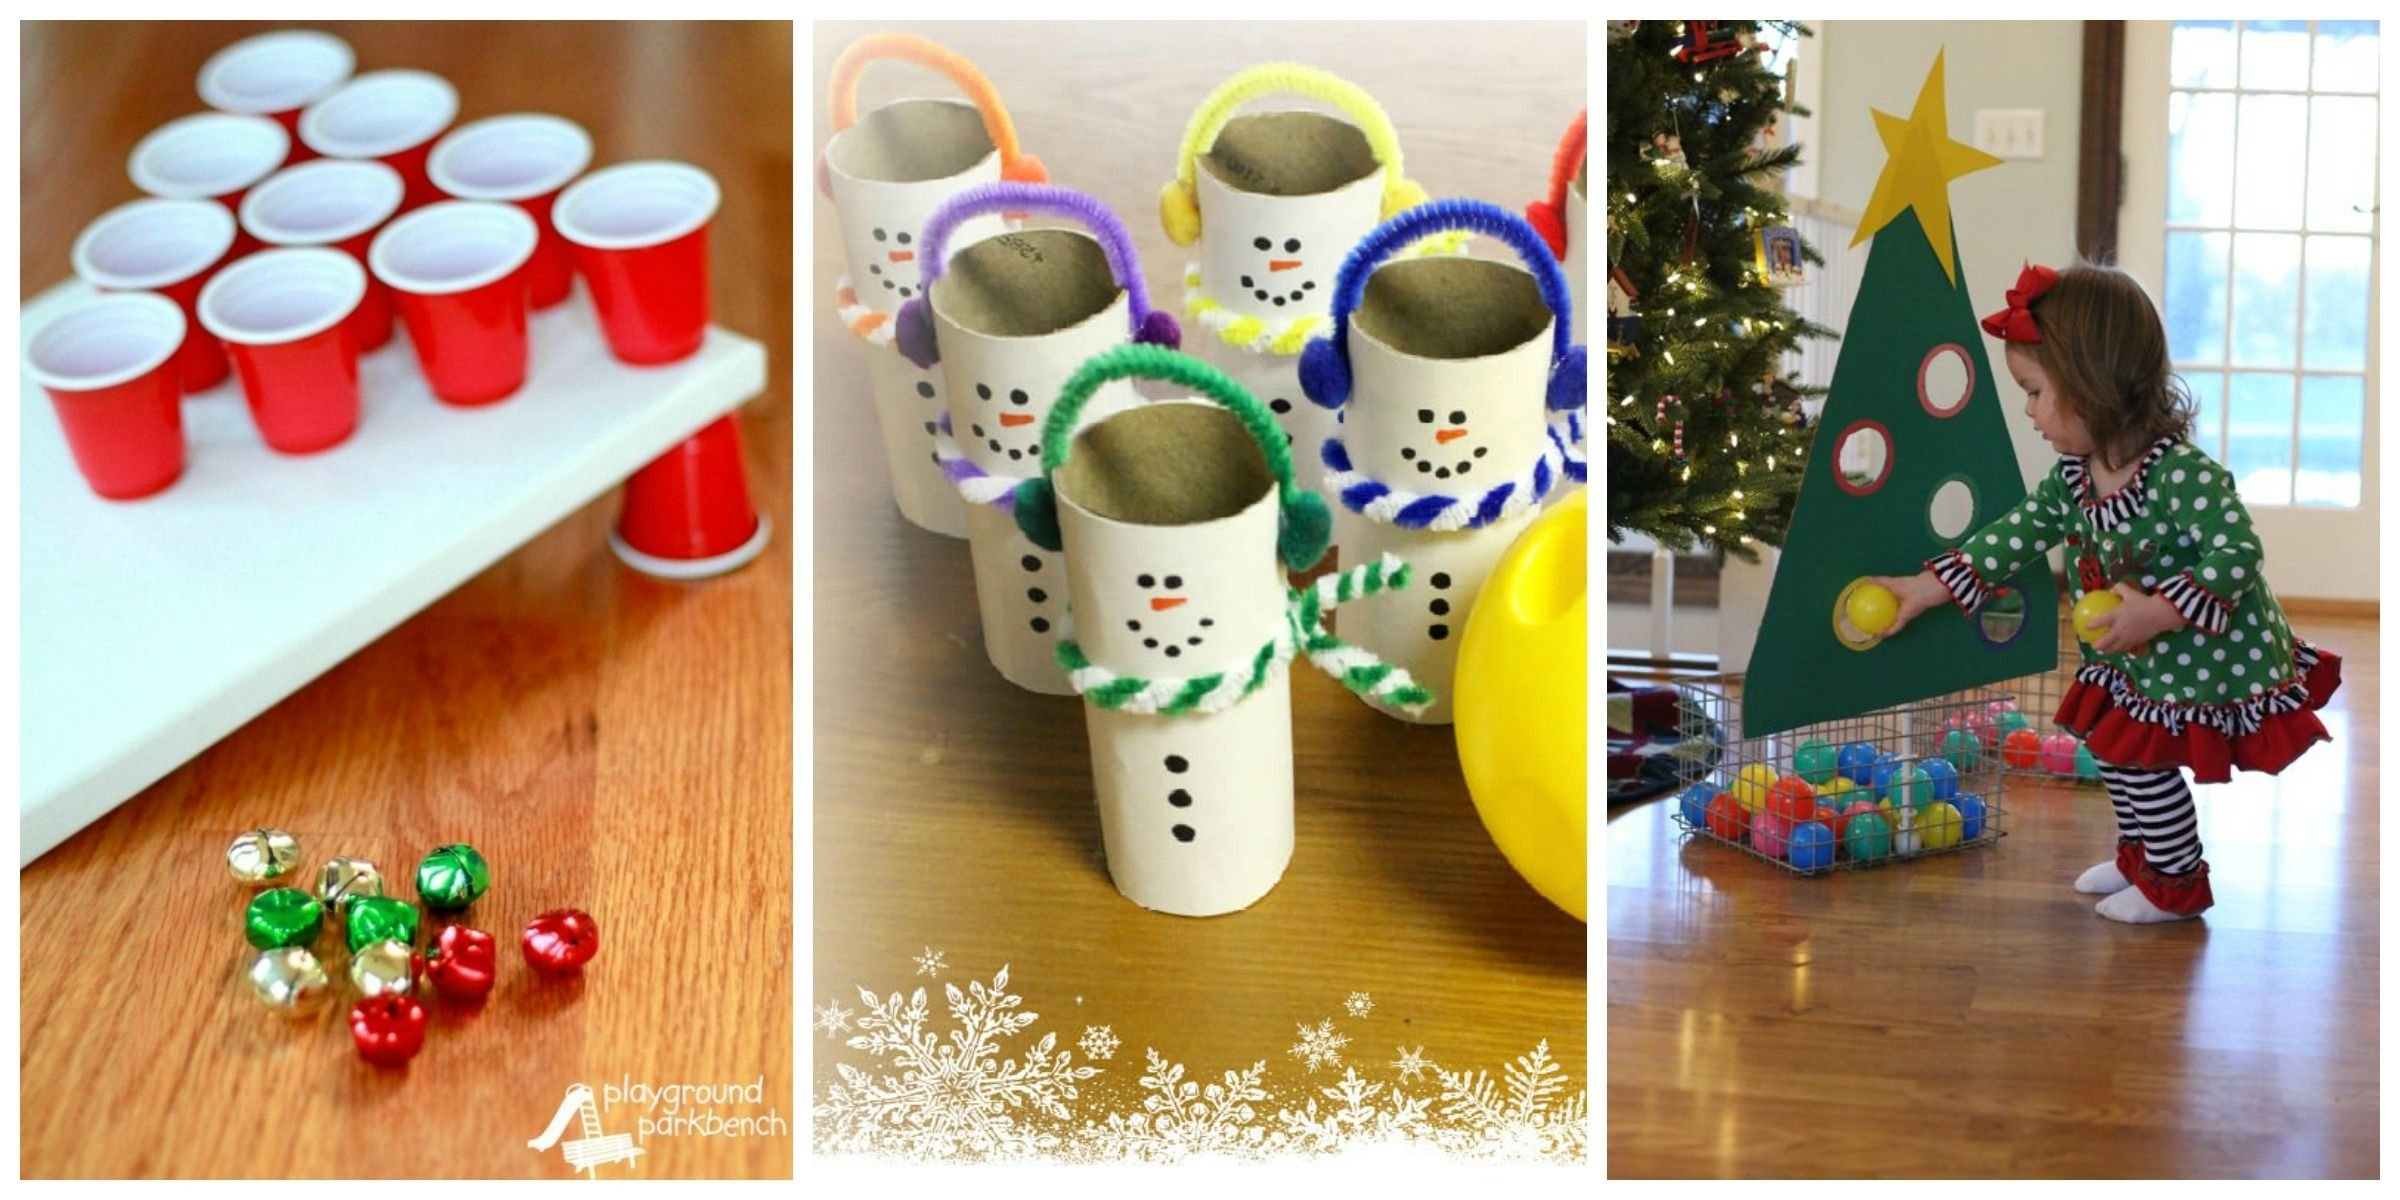 10 Unique Christmas Game Ideas For Kids 22 fun christmas games activities for kids holiday kids table ideas